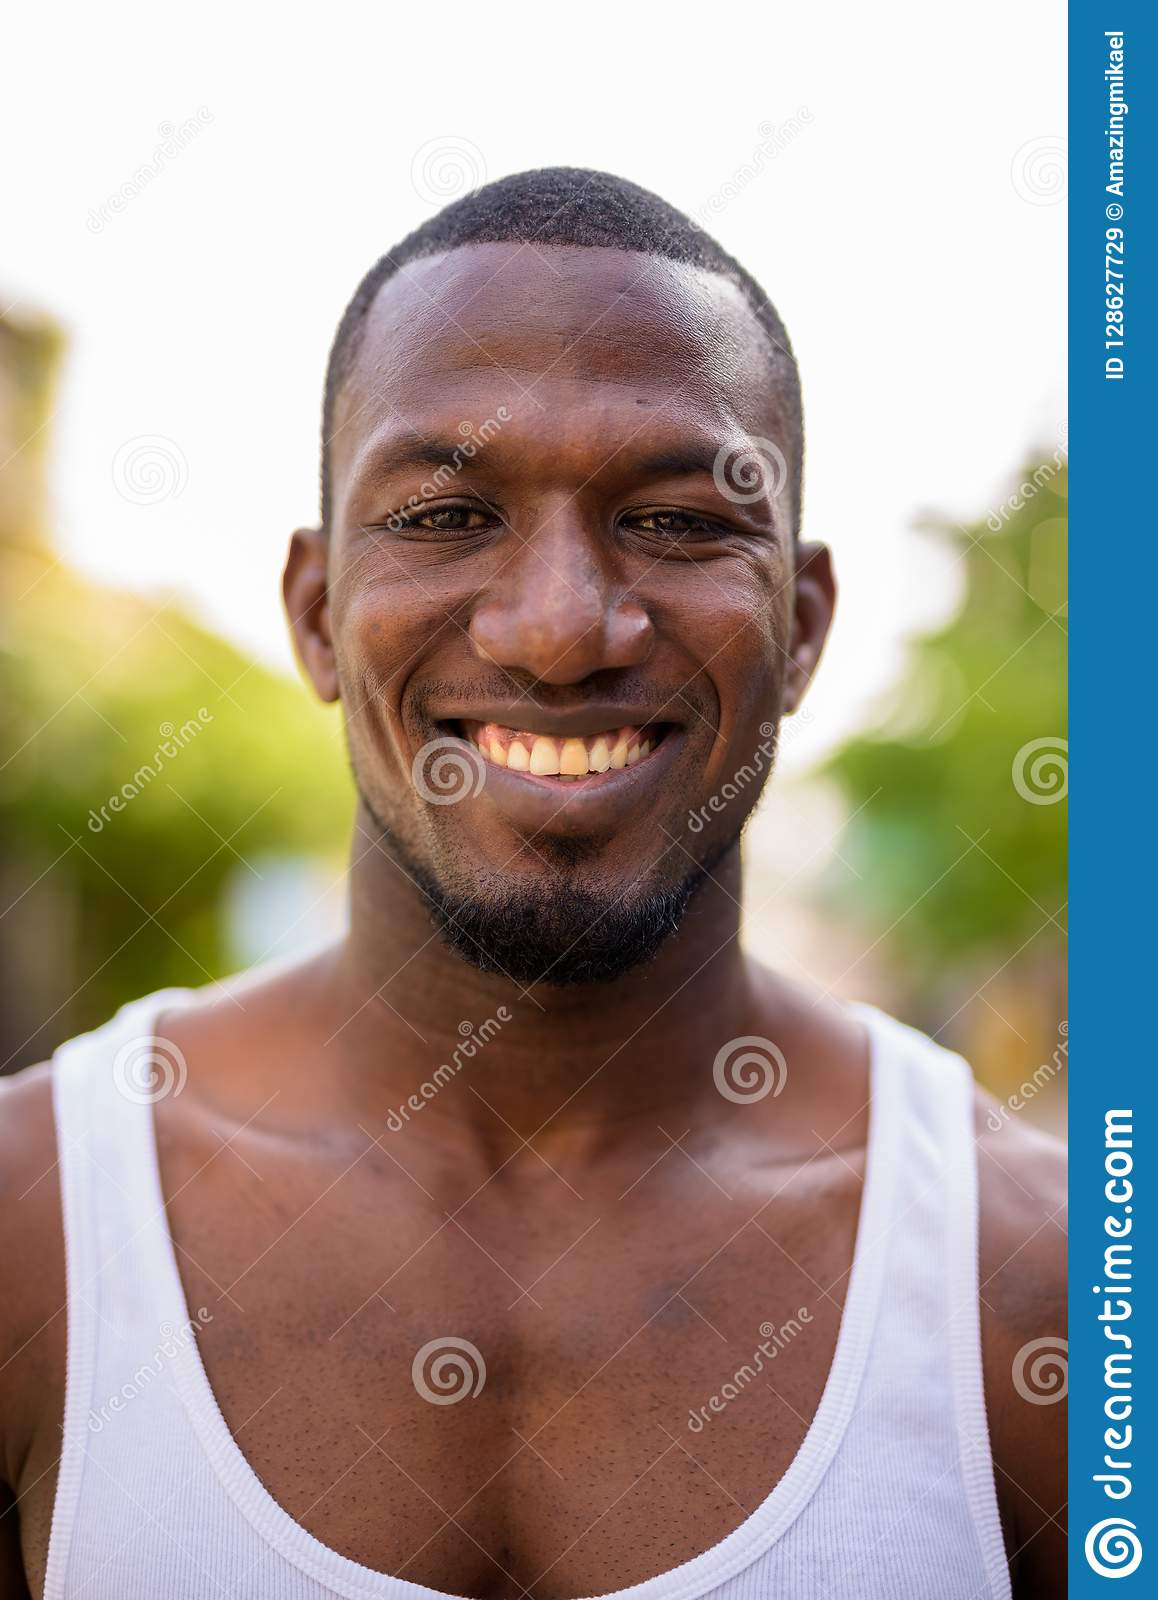 d46054e05 Portrait of handsome muscular African man wearing tank top in the streets  outdoors